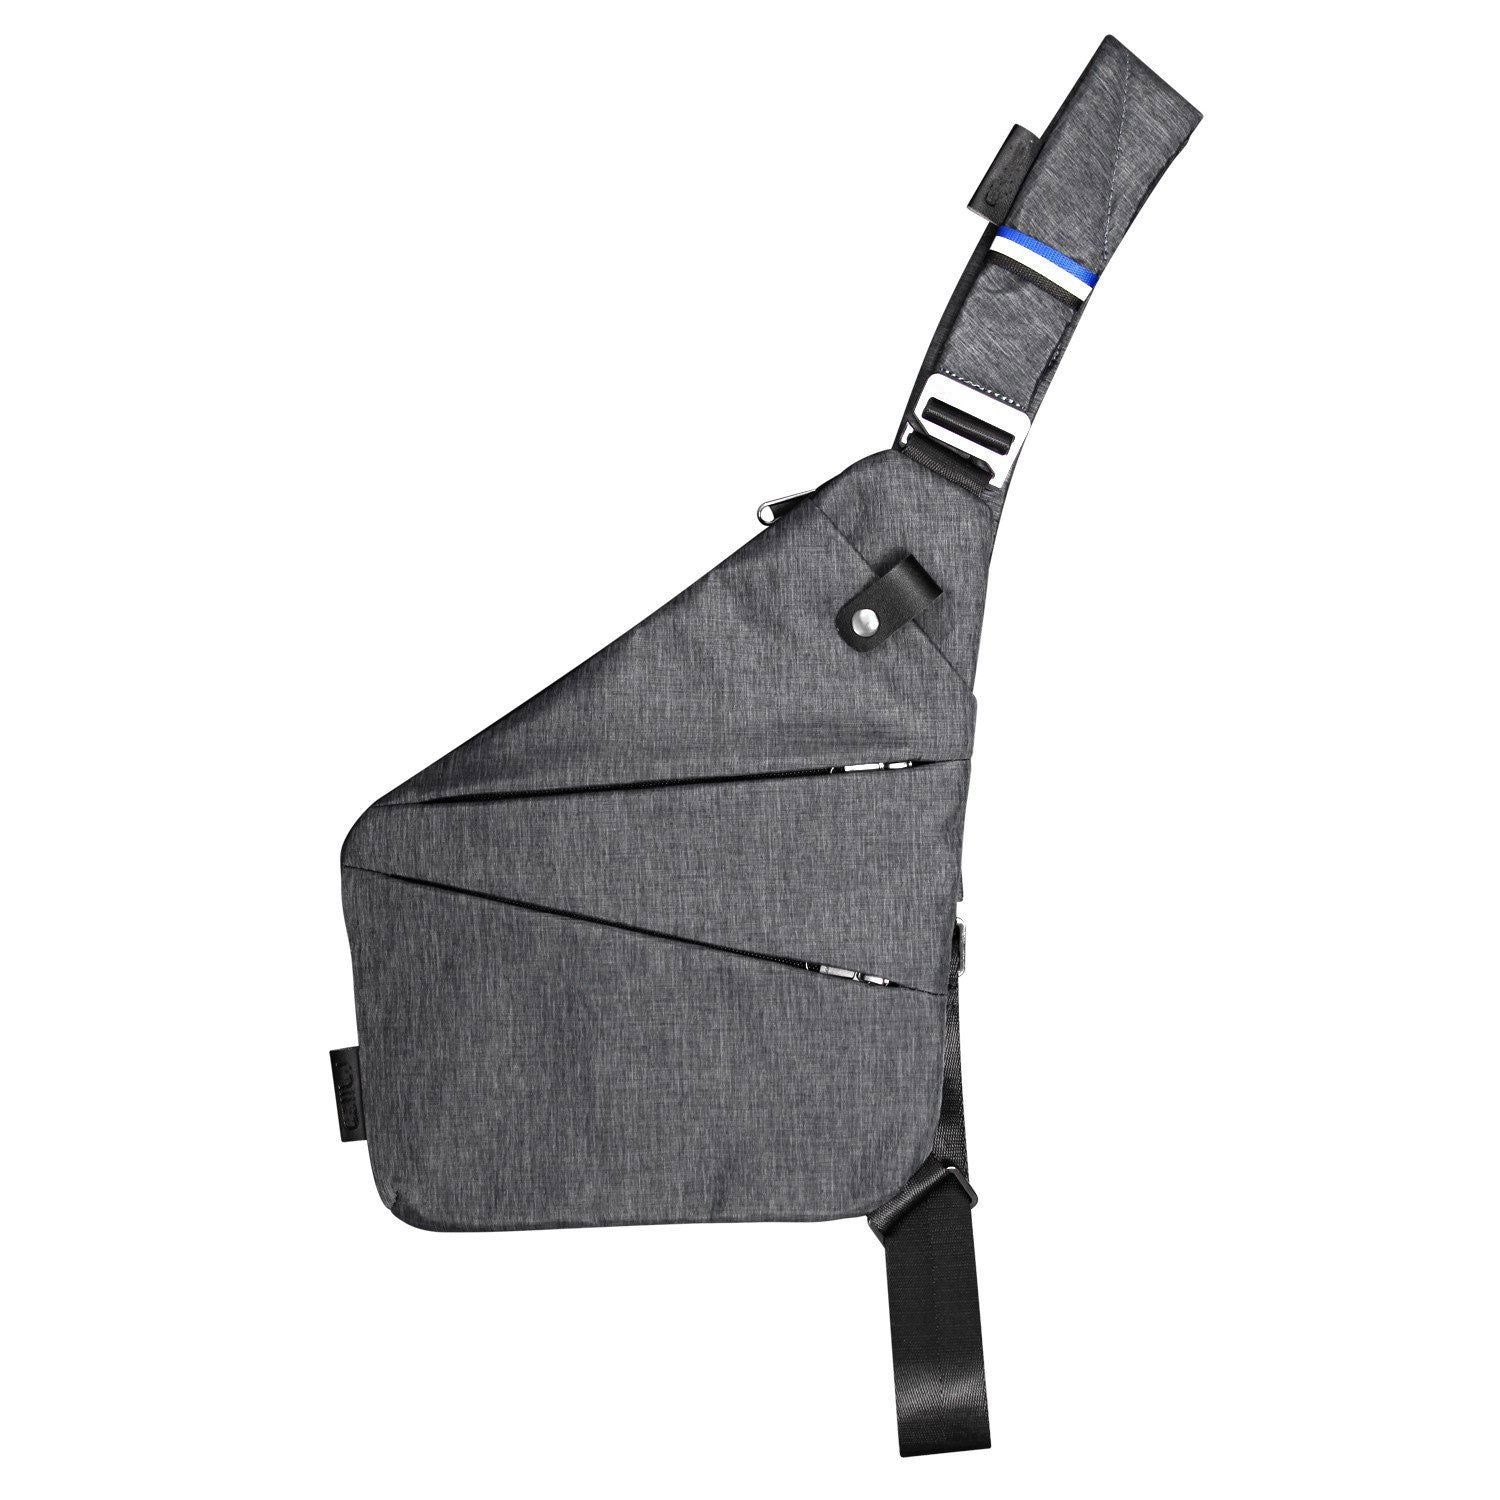 [2019 HOT SALE] Inclined shoulder bag-A time-limited discount of $30